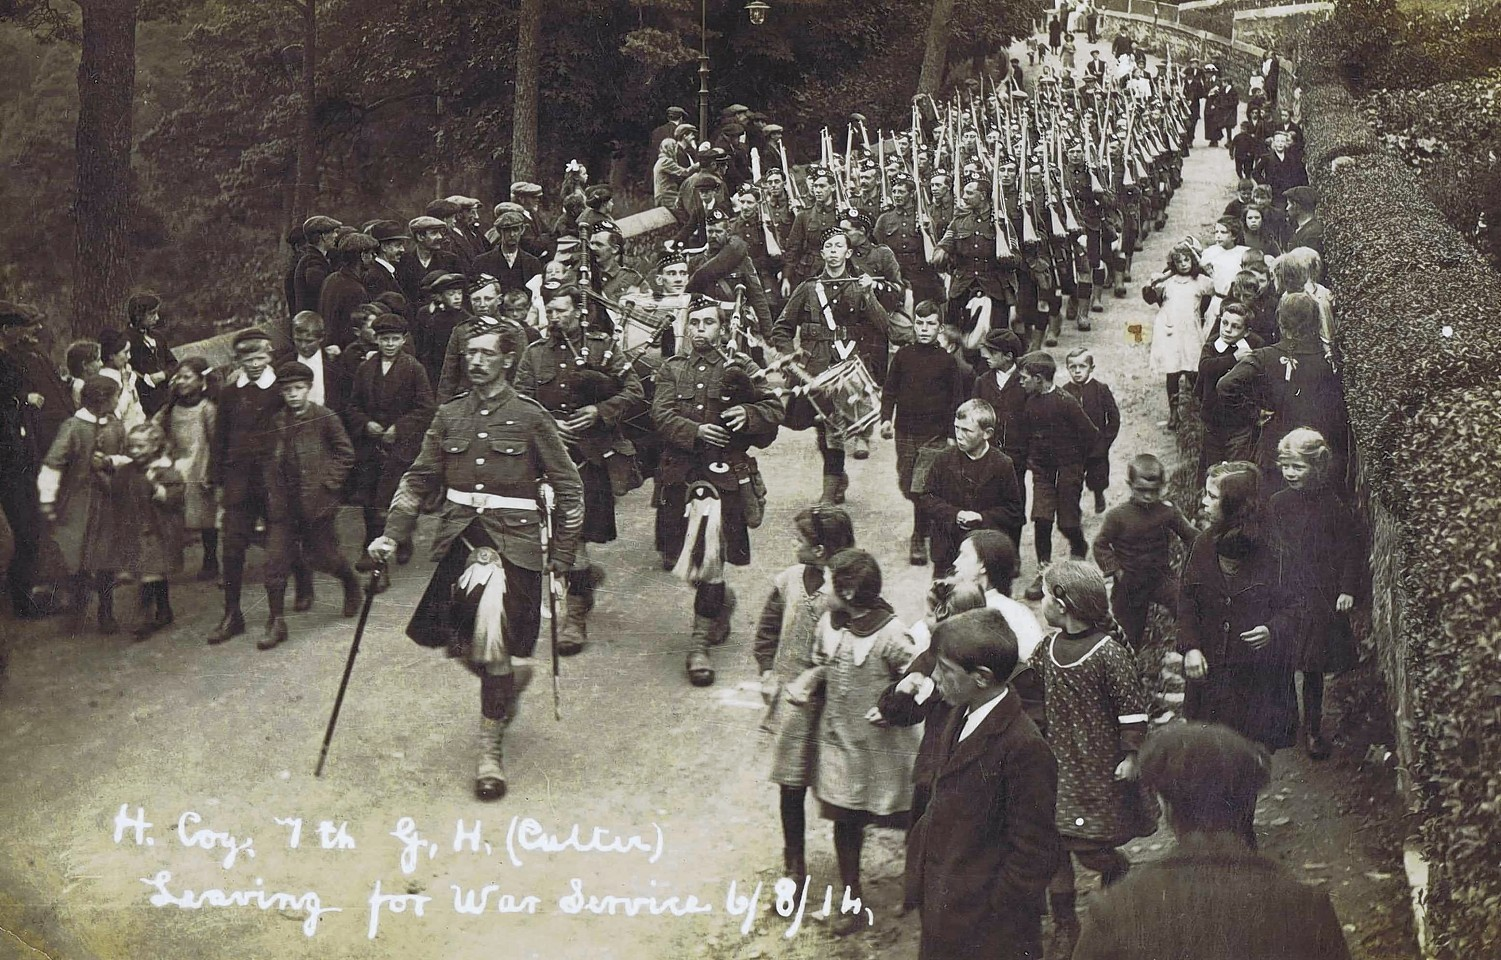 Soldiers who served in WWI with the 7th Battalion Gordon Highlanders. Photo courtesy of Gordon HIghlanders Museum